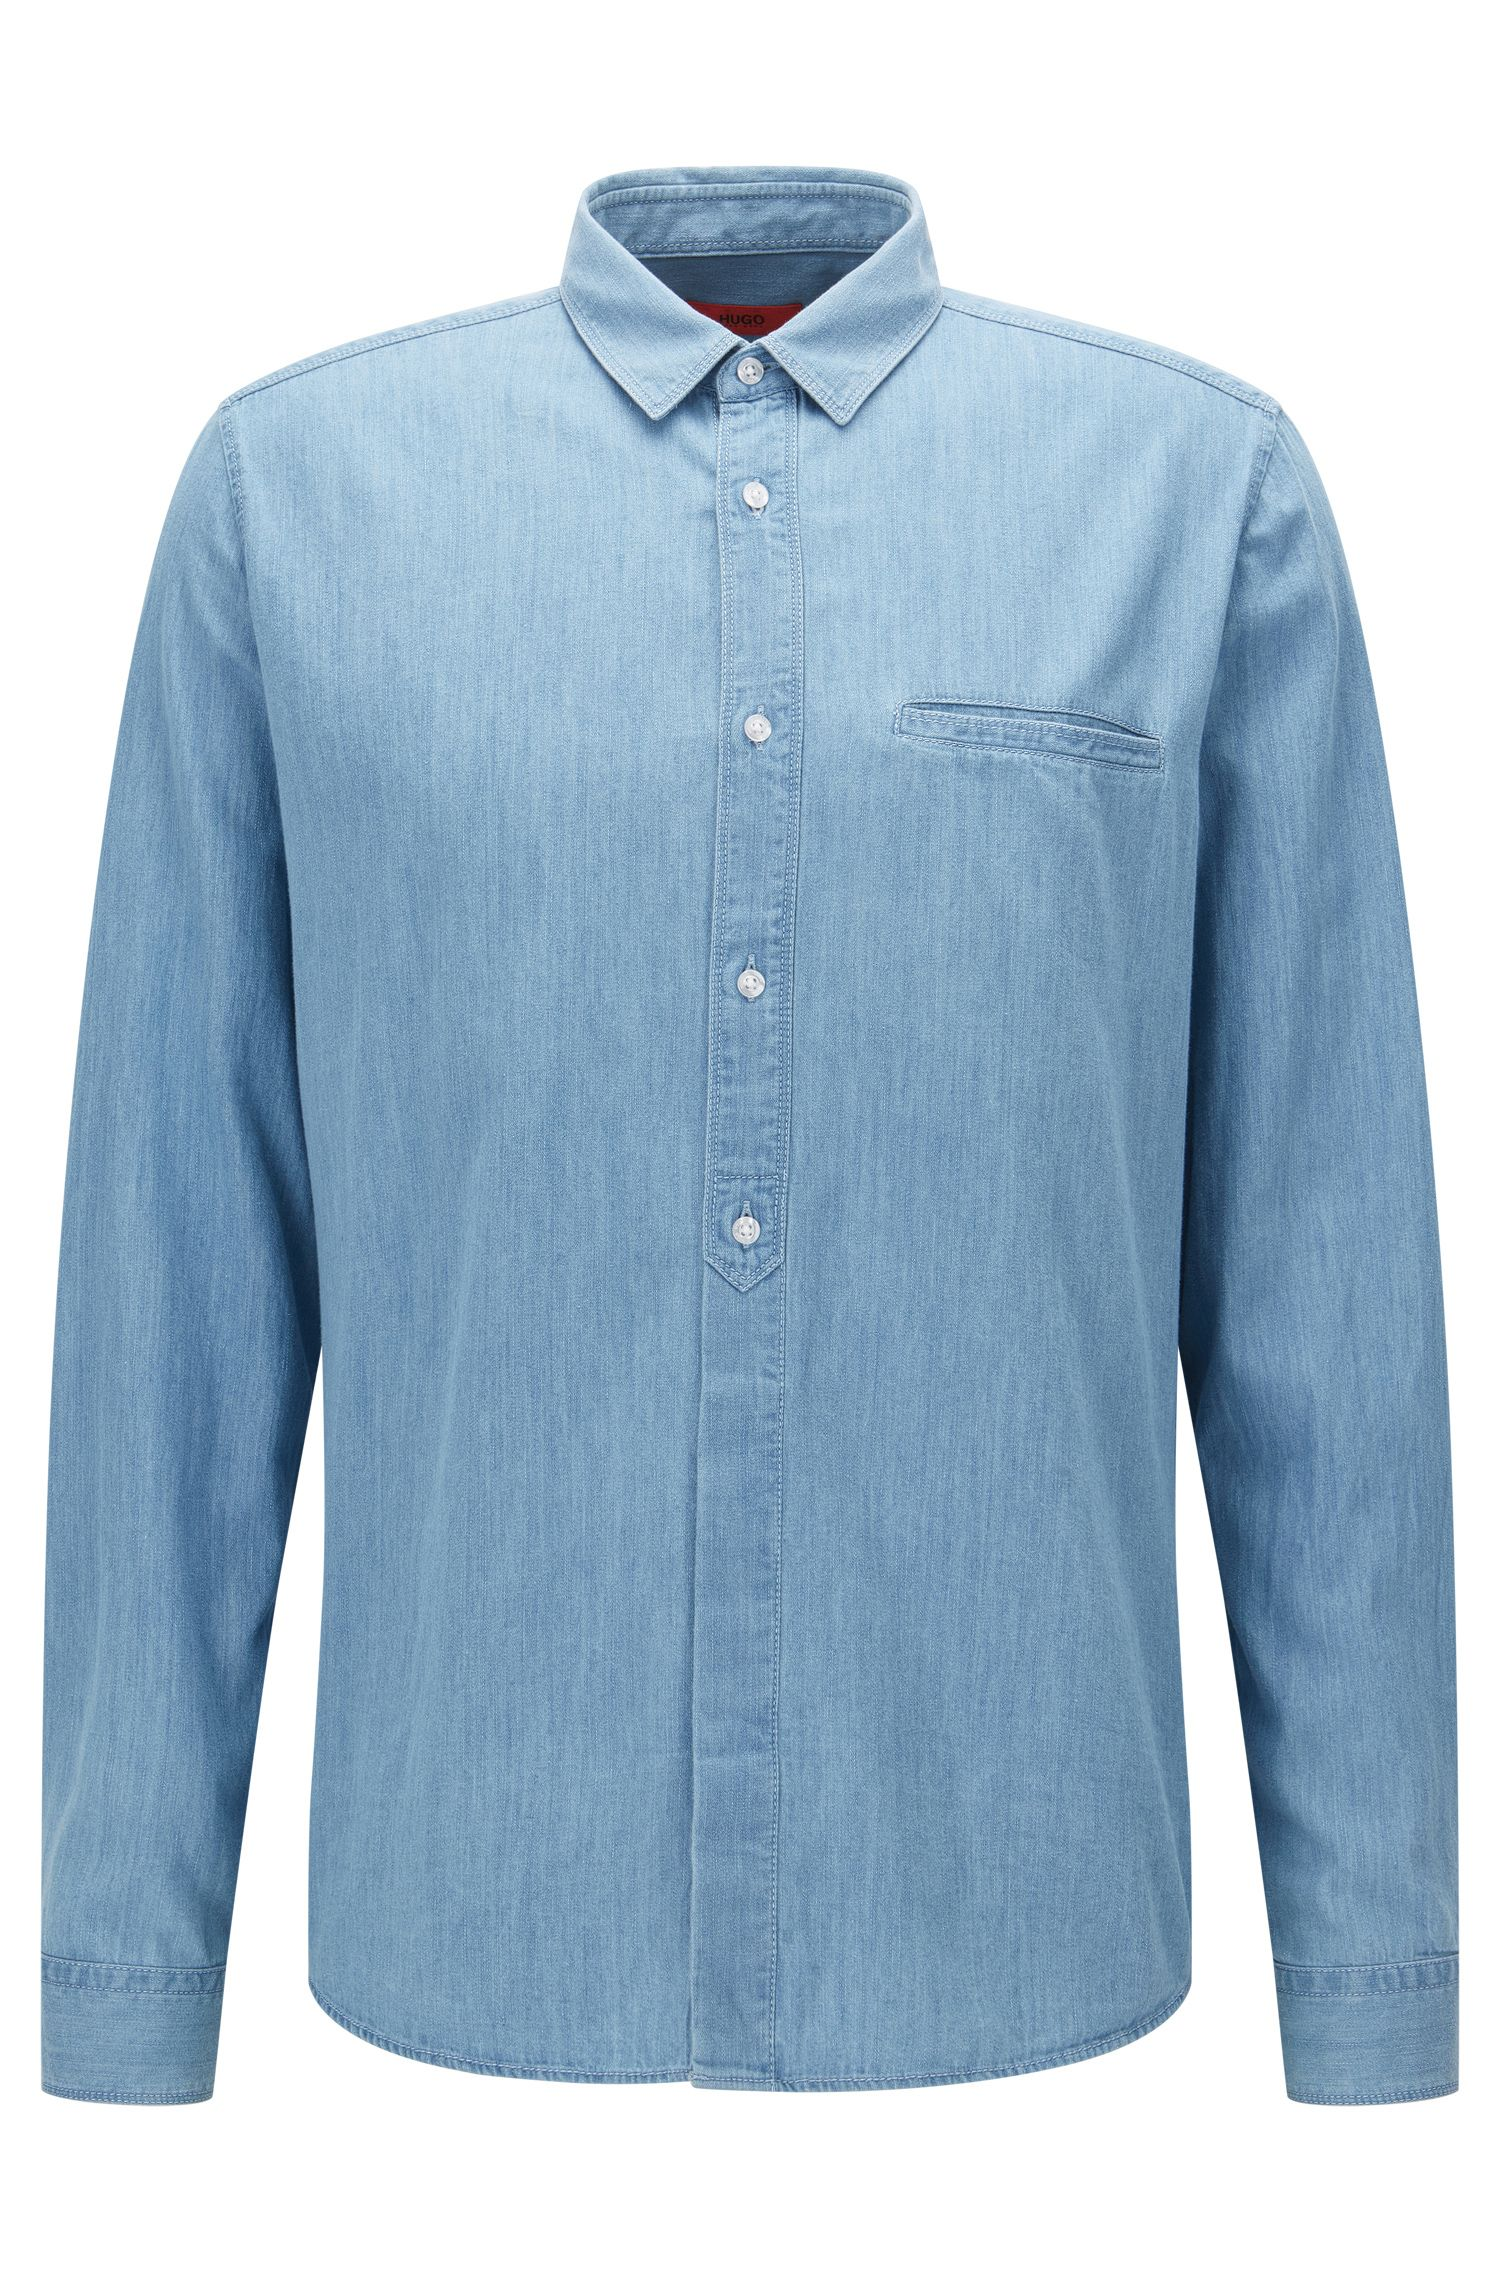 Camisa relaxed fit en denim lavado